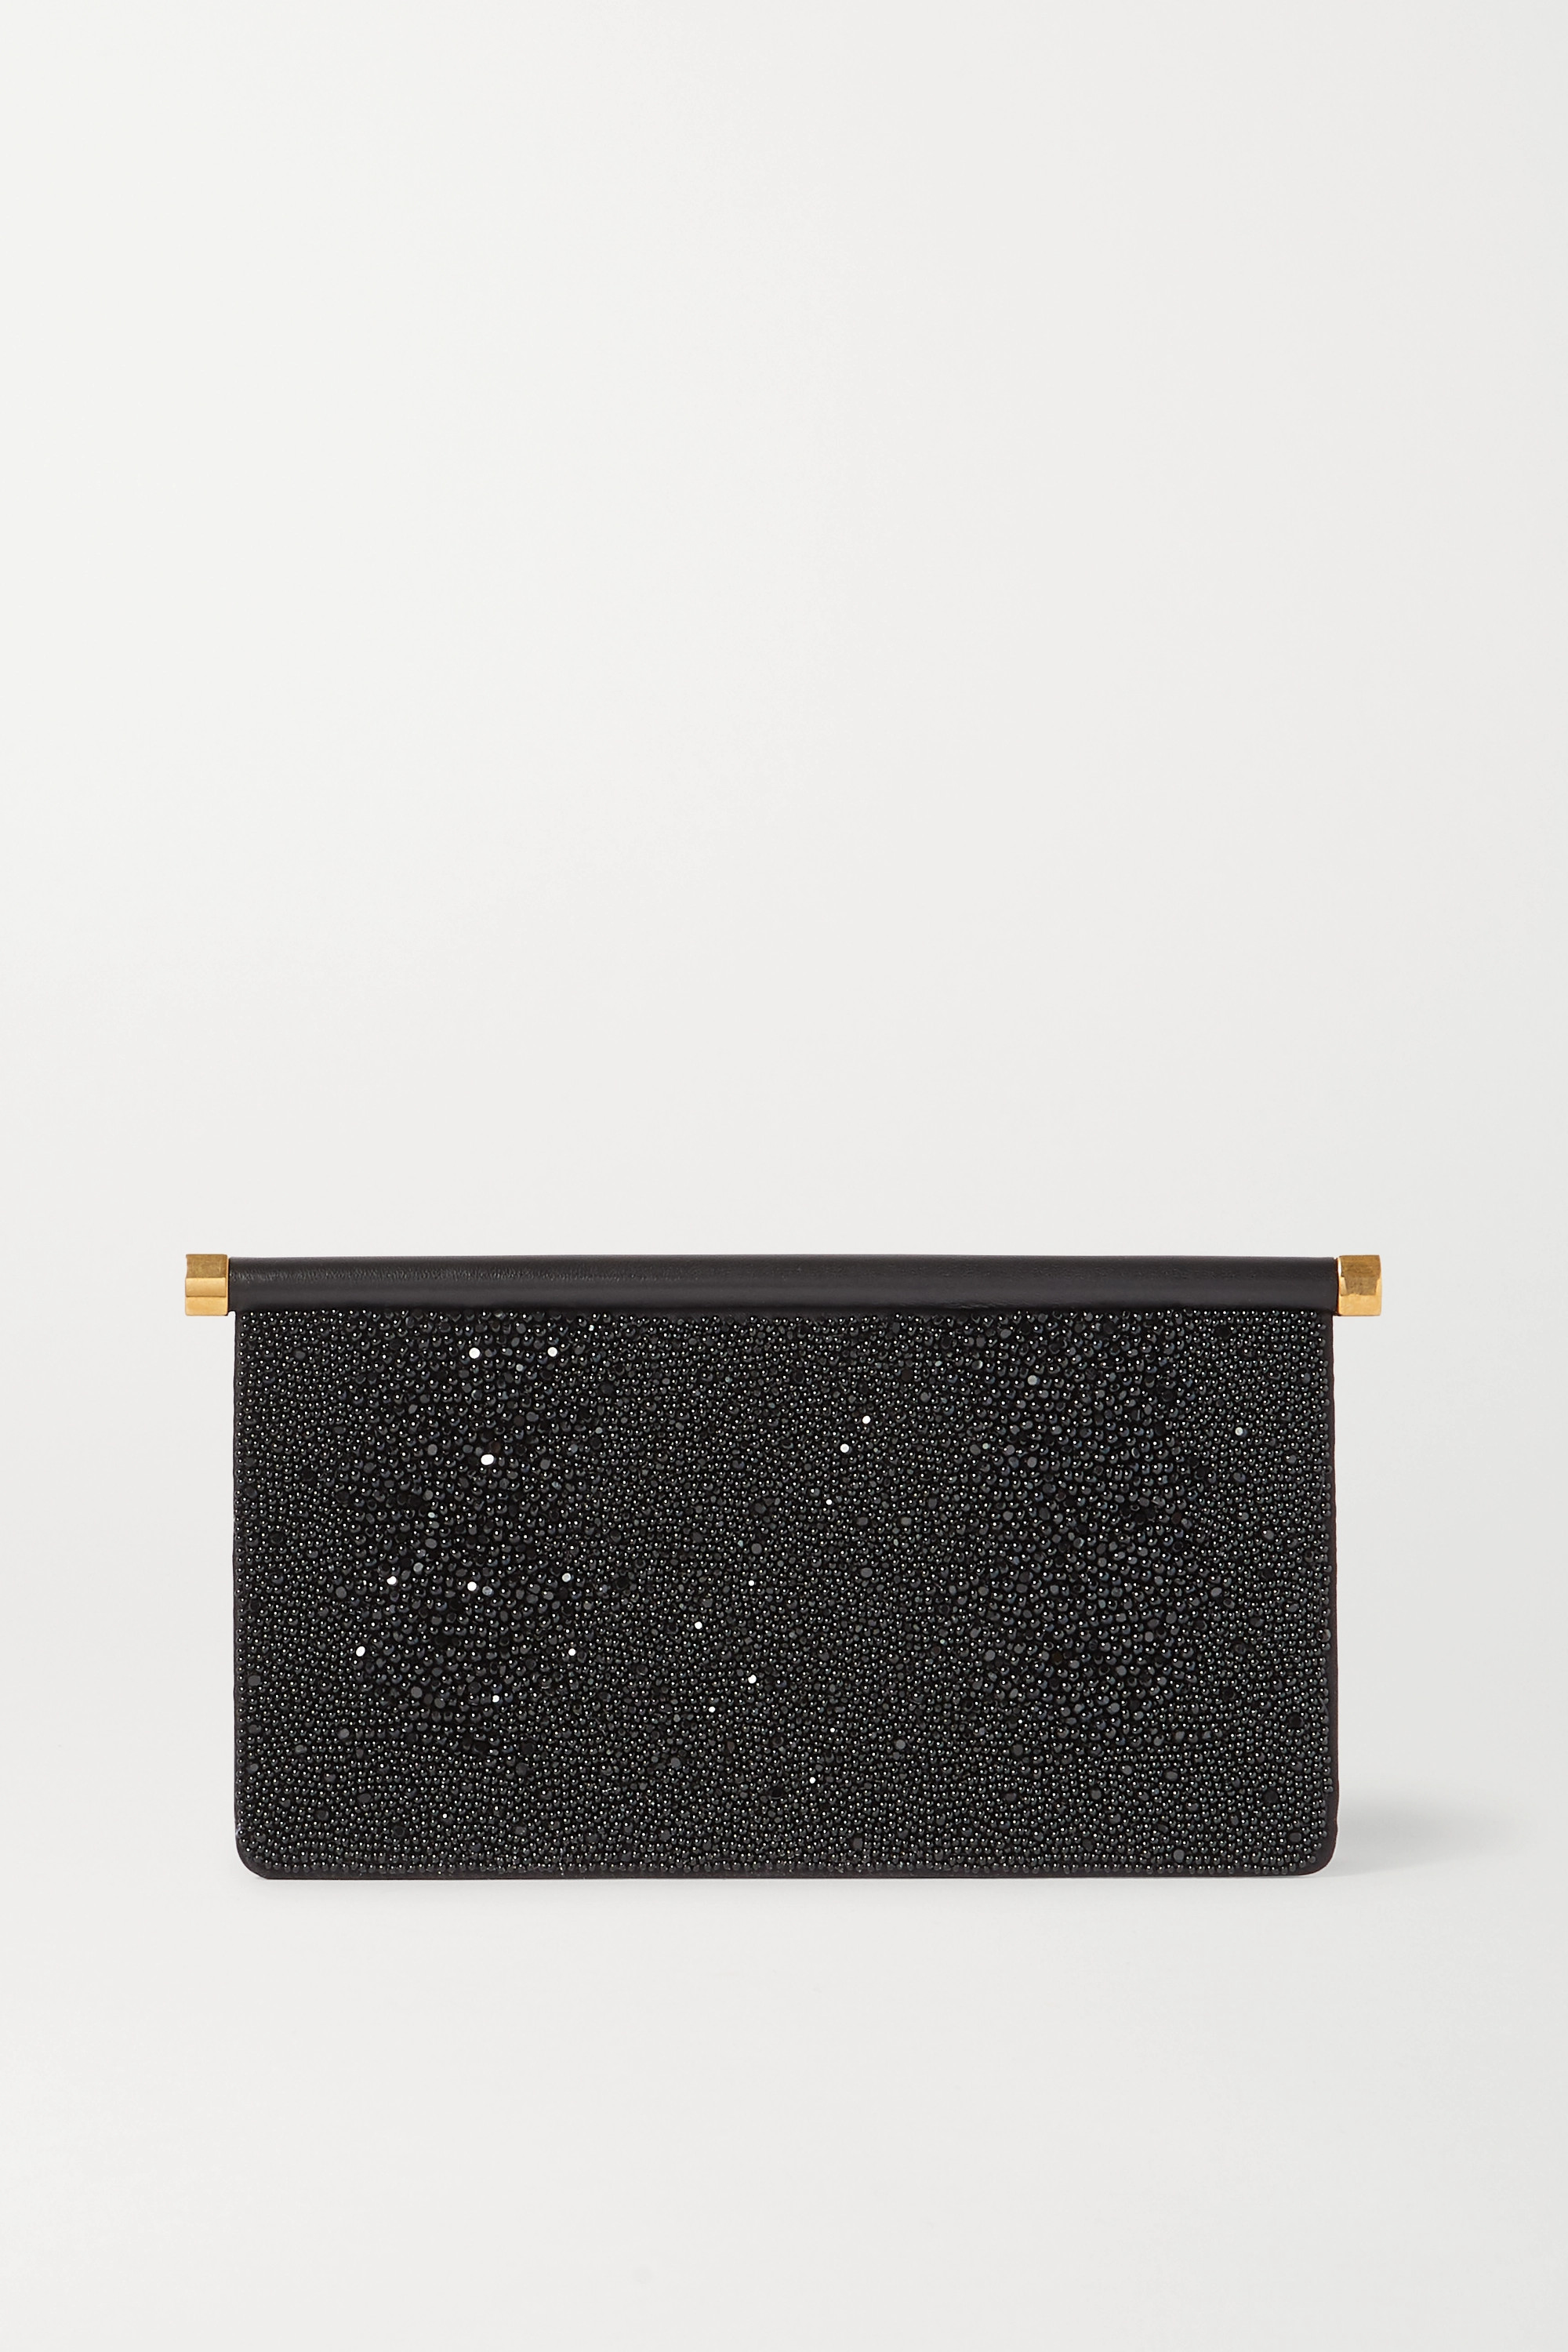 Valentino Valentino Garavani Carry Secrets beaded leather clutch